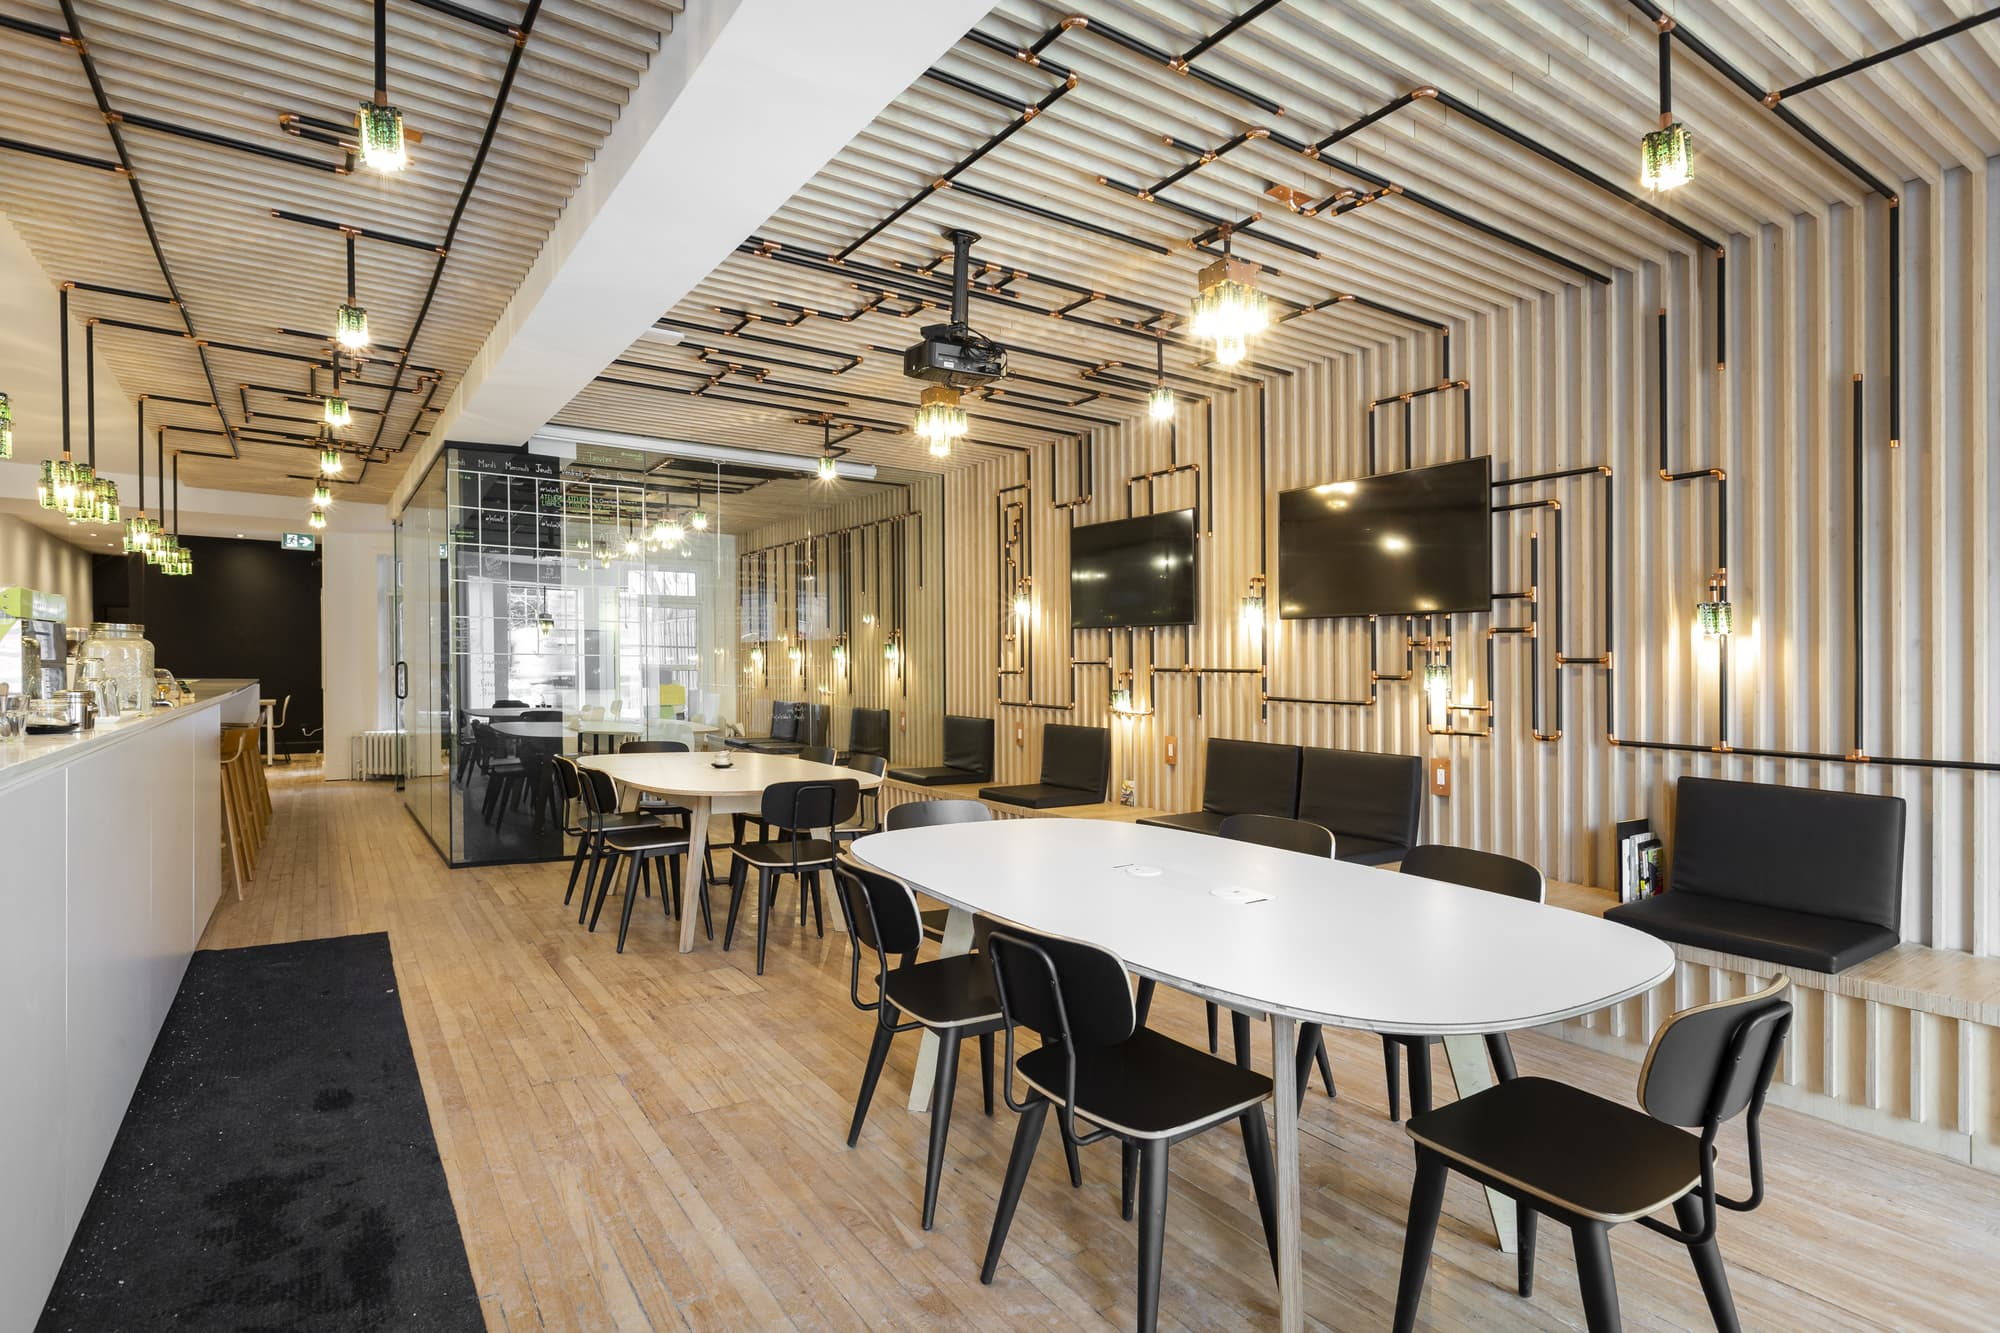 commercial design - internet cafe with beige tables and black chairs